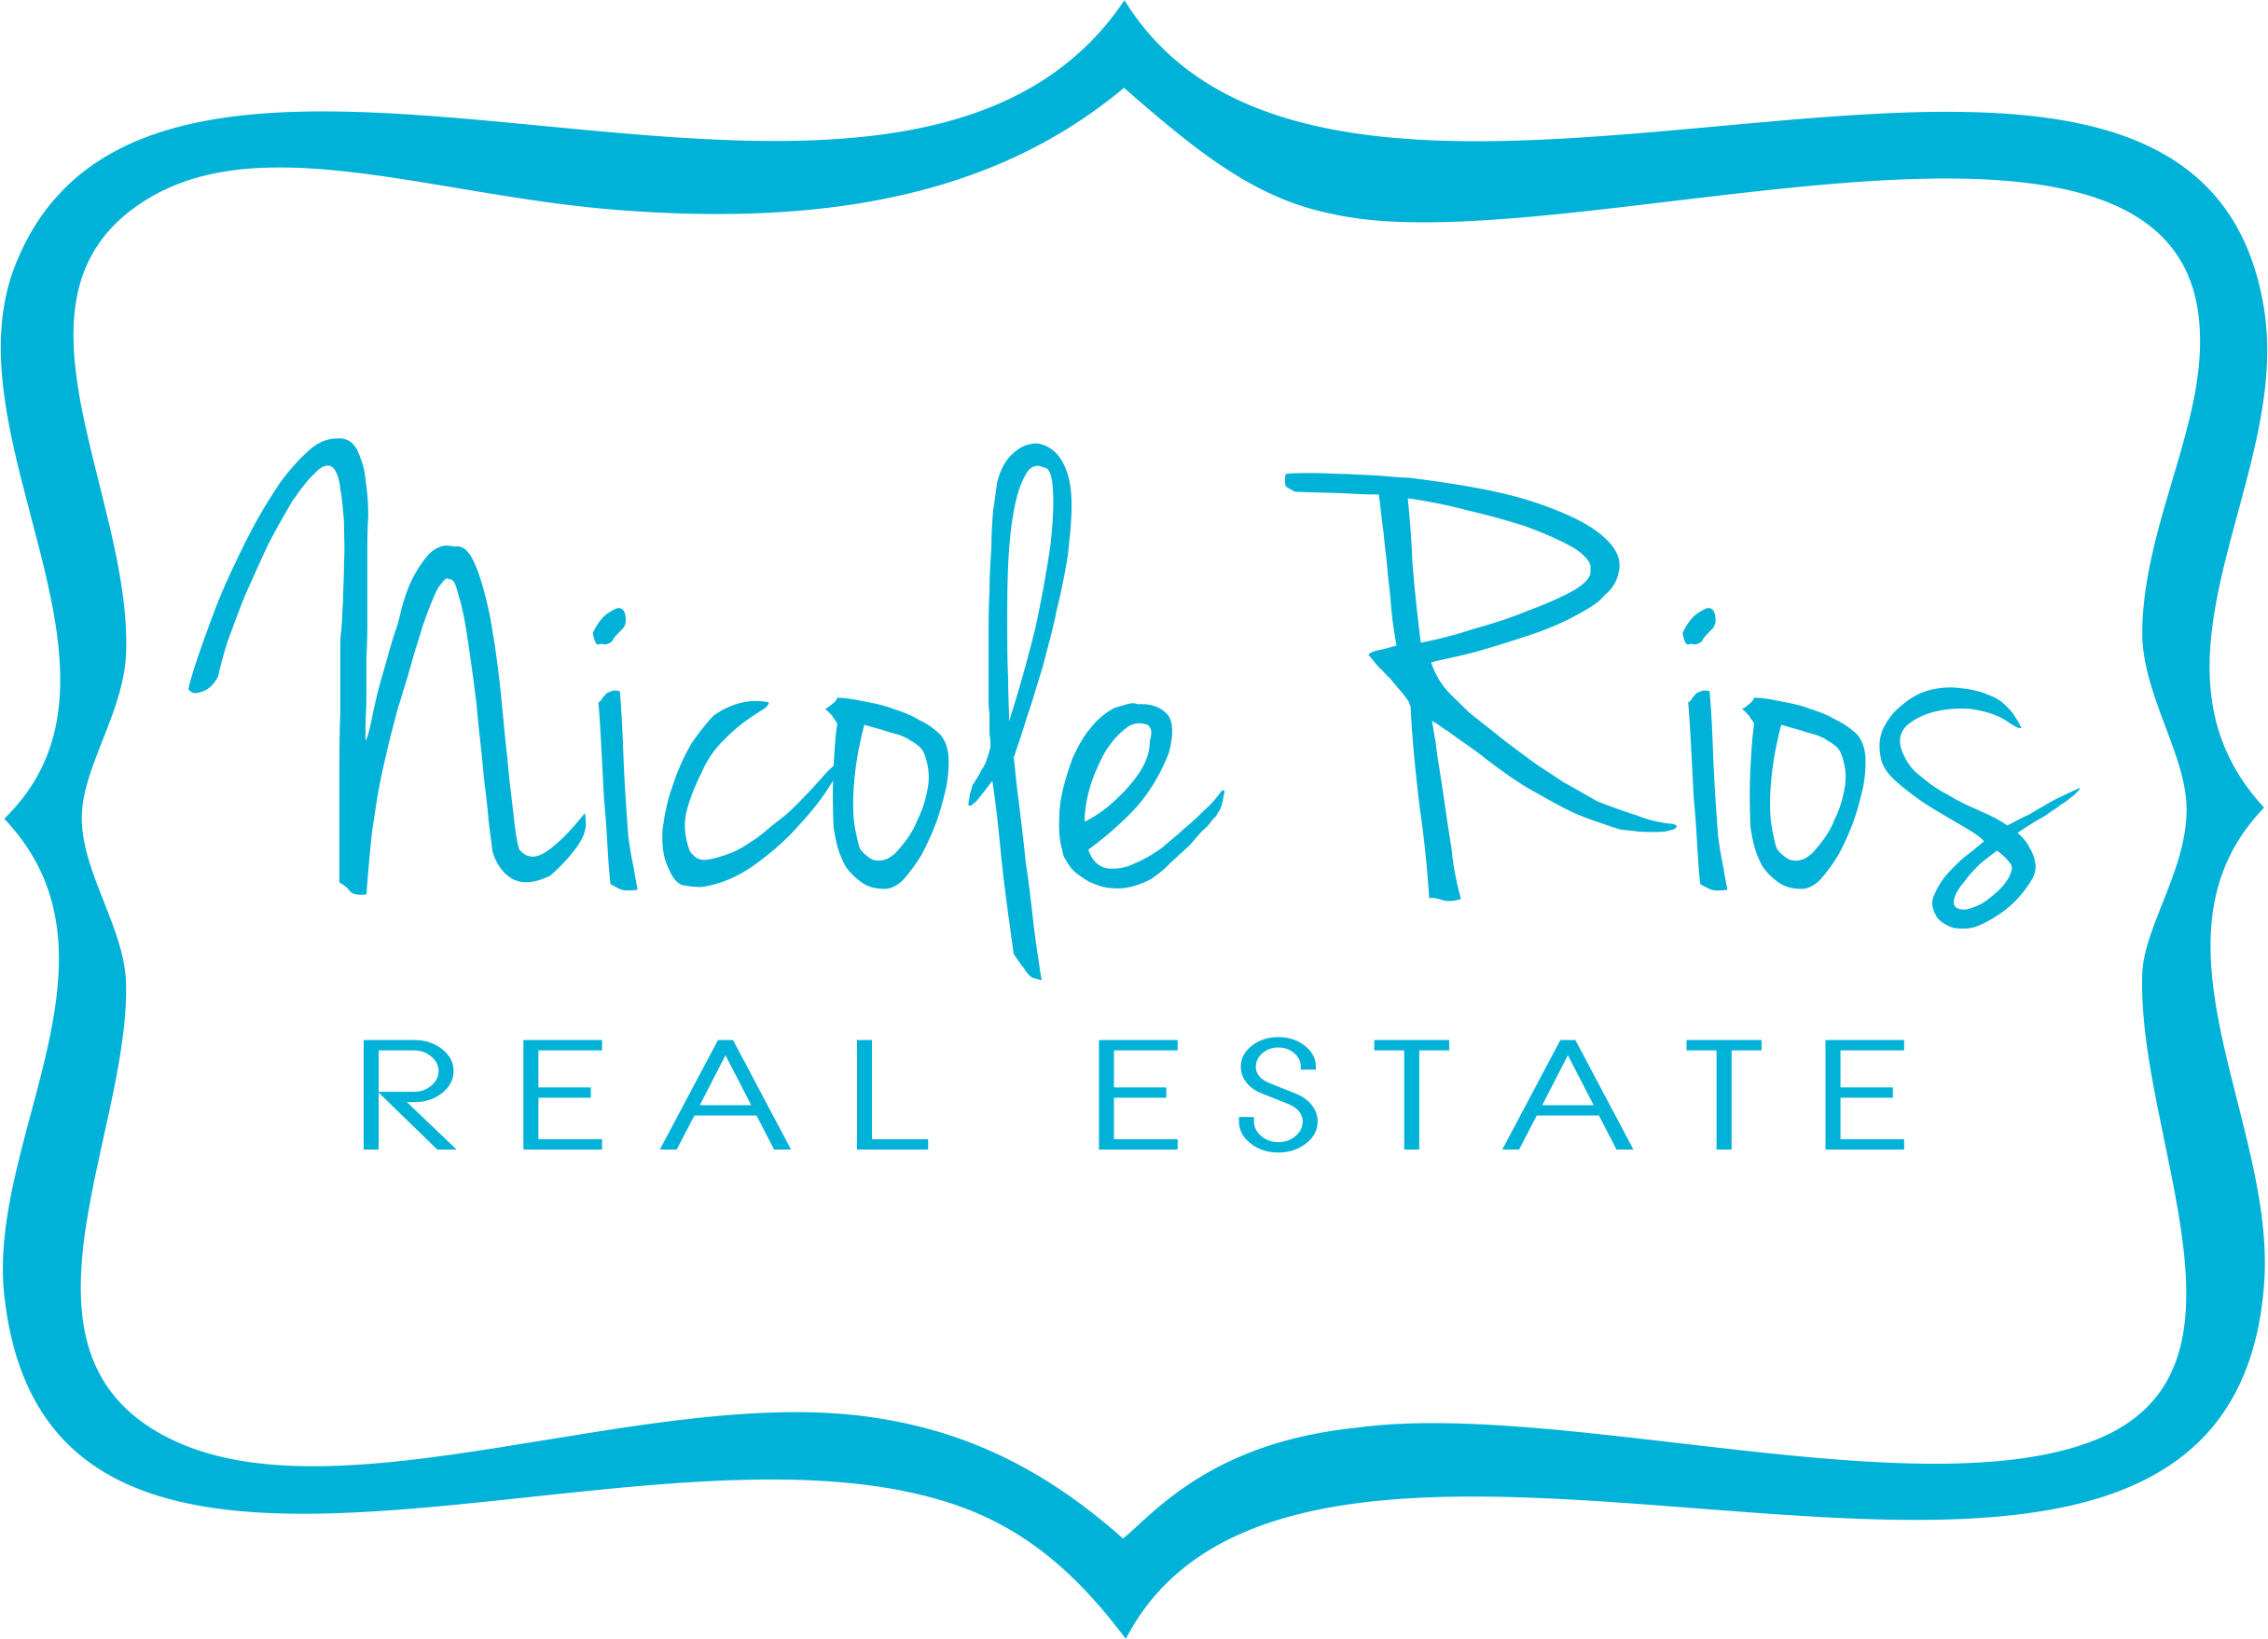 Nicole Rios Real Estate